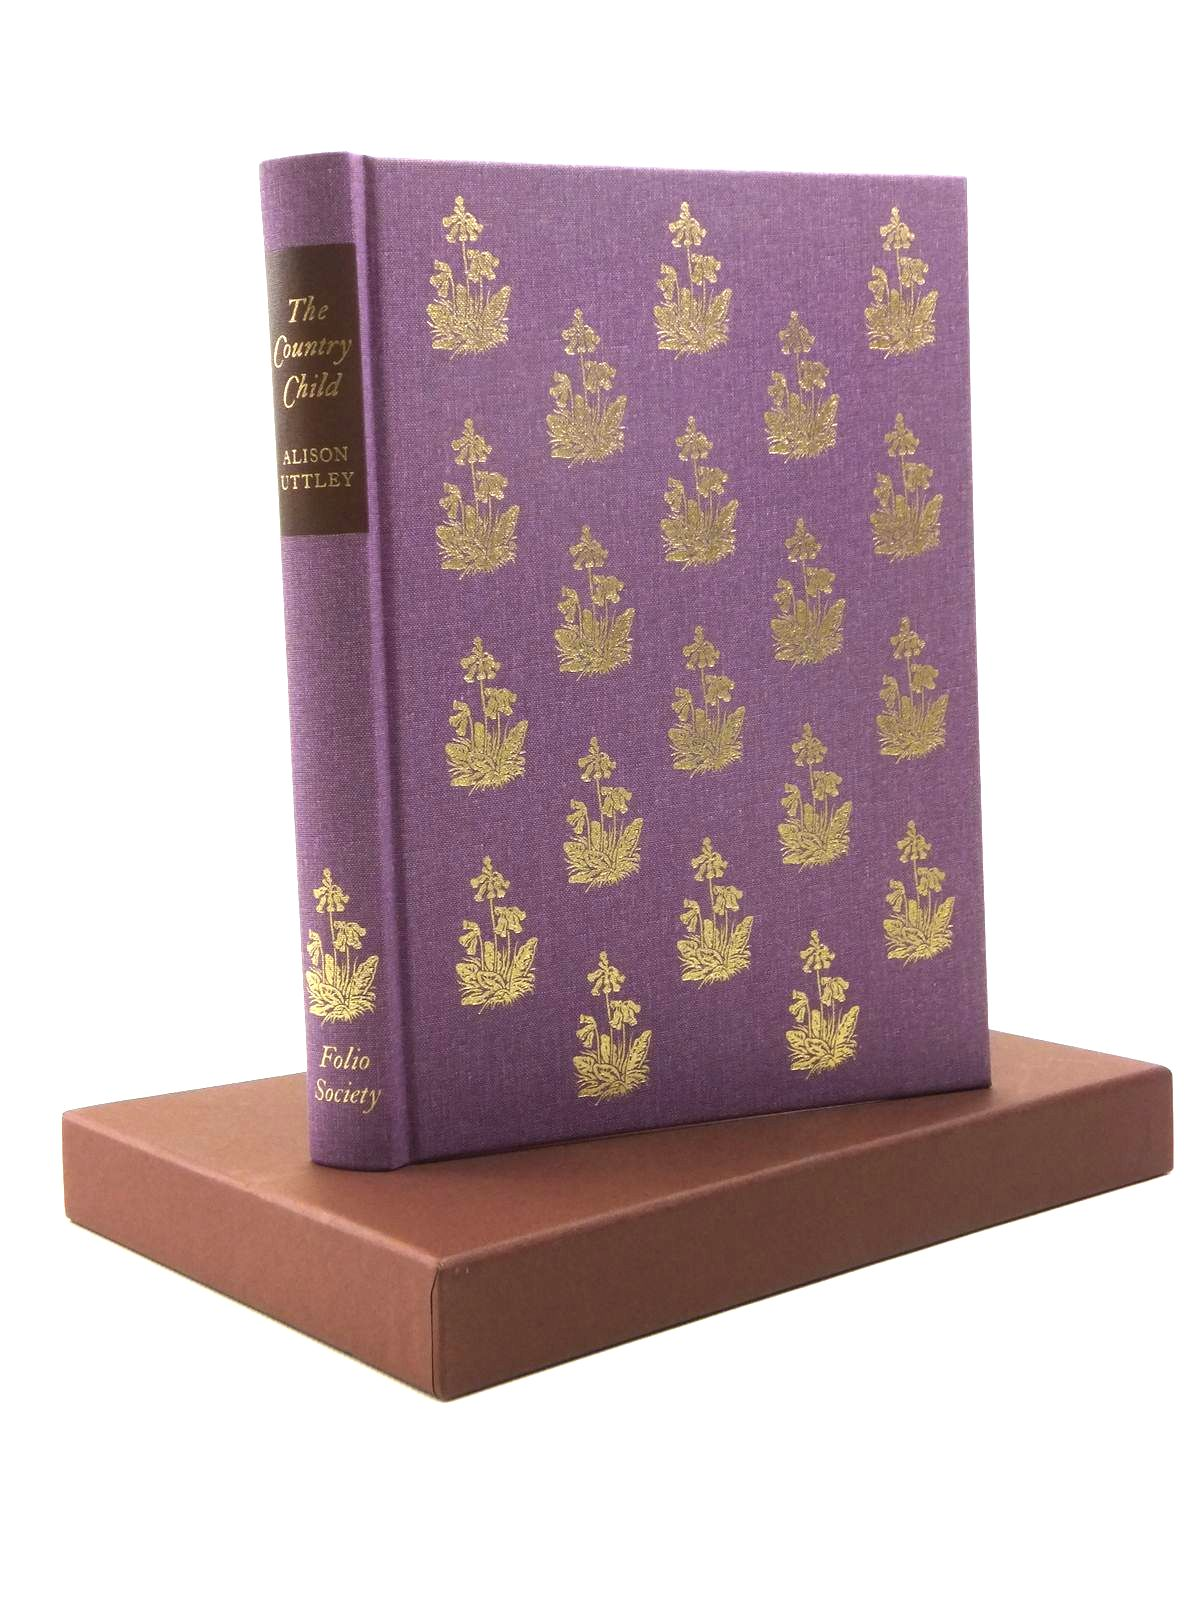 Photo of THE COUNTRY CHILD written by Uttley, Alison illustrated by Tunnicliffe, C.F. published by Folio Society (STOCK CODE: 1208444)  for sale by Stella & Rose's Books